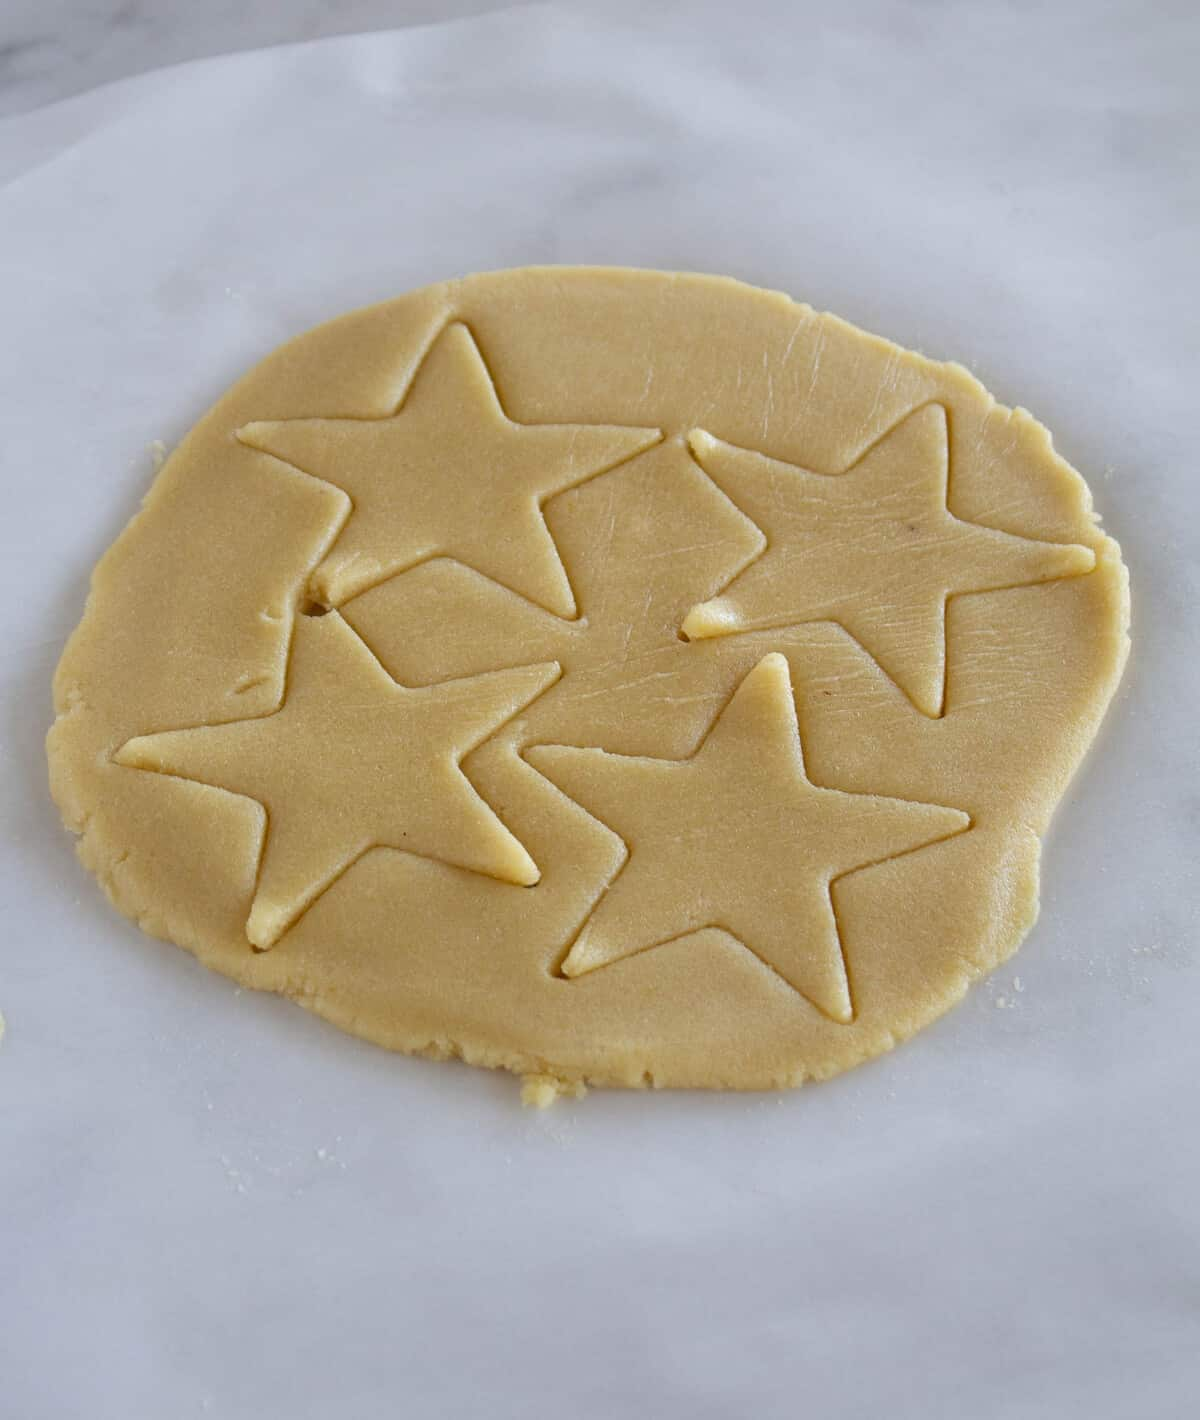 Rolled Cookie Dough With Star Shapes In It